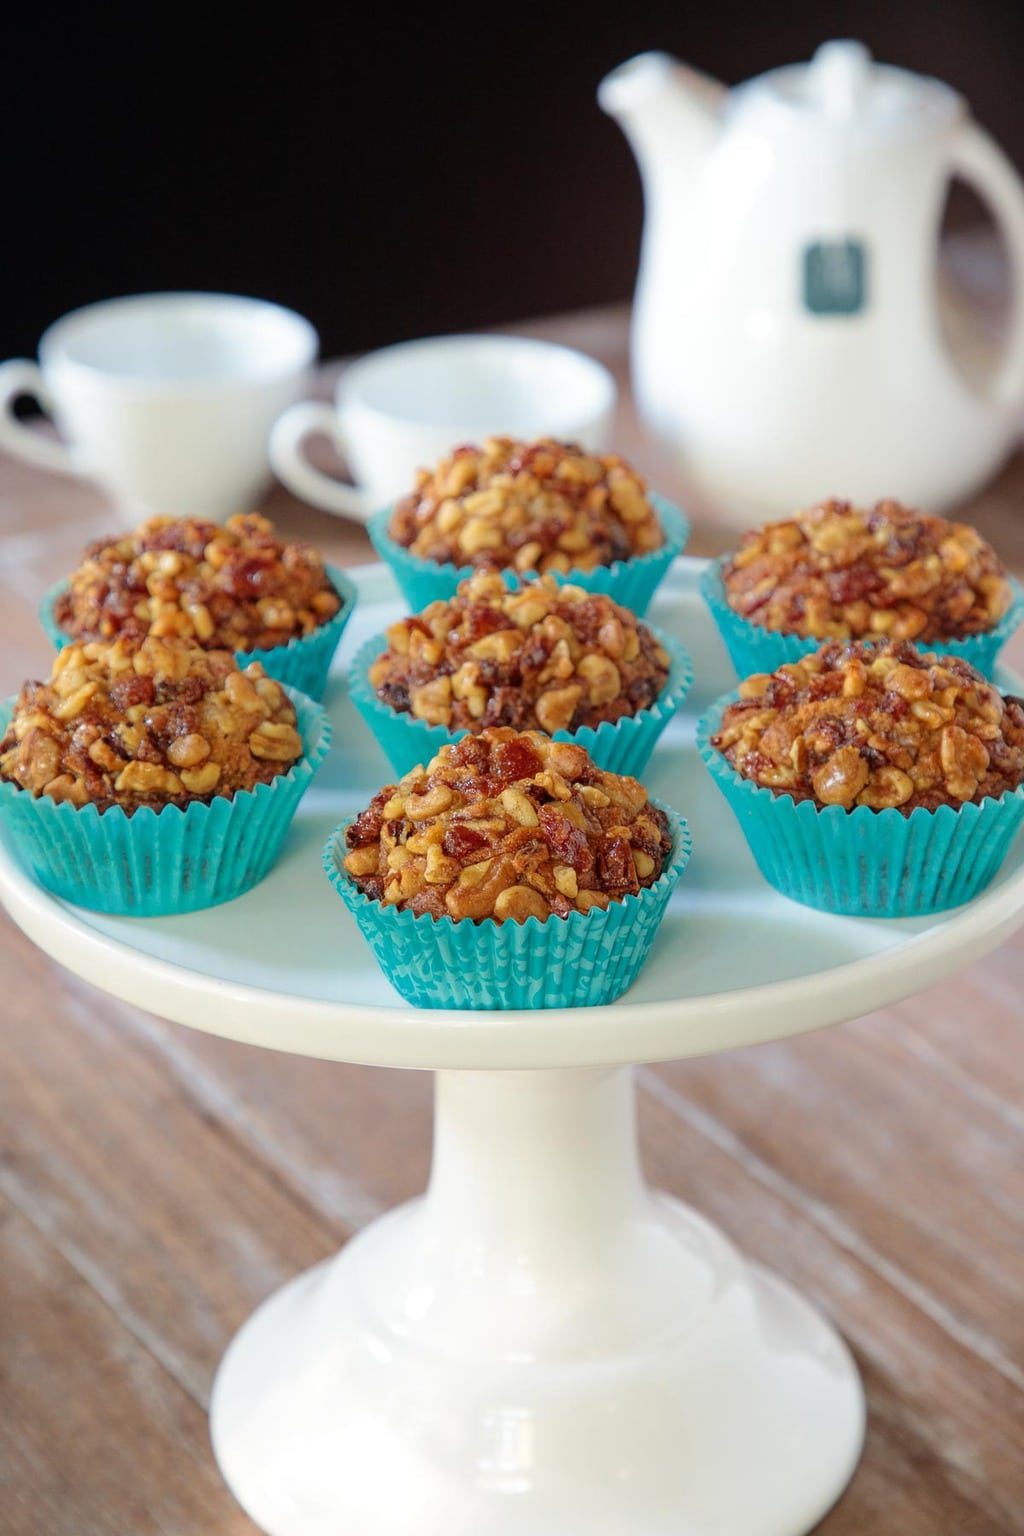 Photo of a white cake stand filled with Walnut Date Banana Muffins in turquoise cupcake liners.